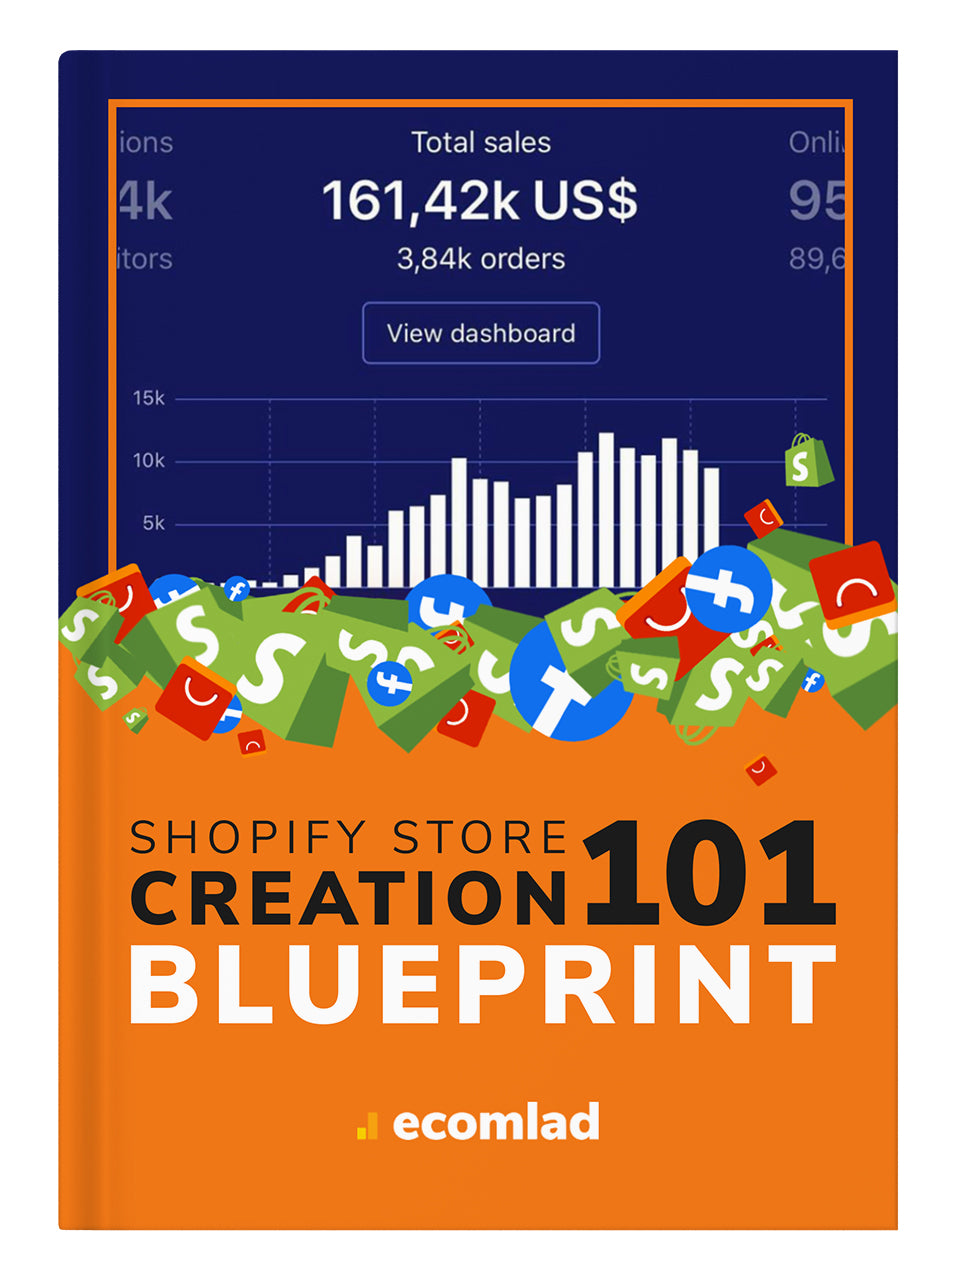 Shopify Store Creation 101 Blueprint